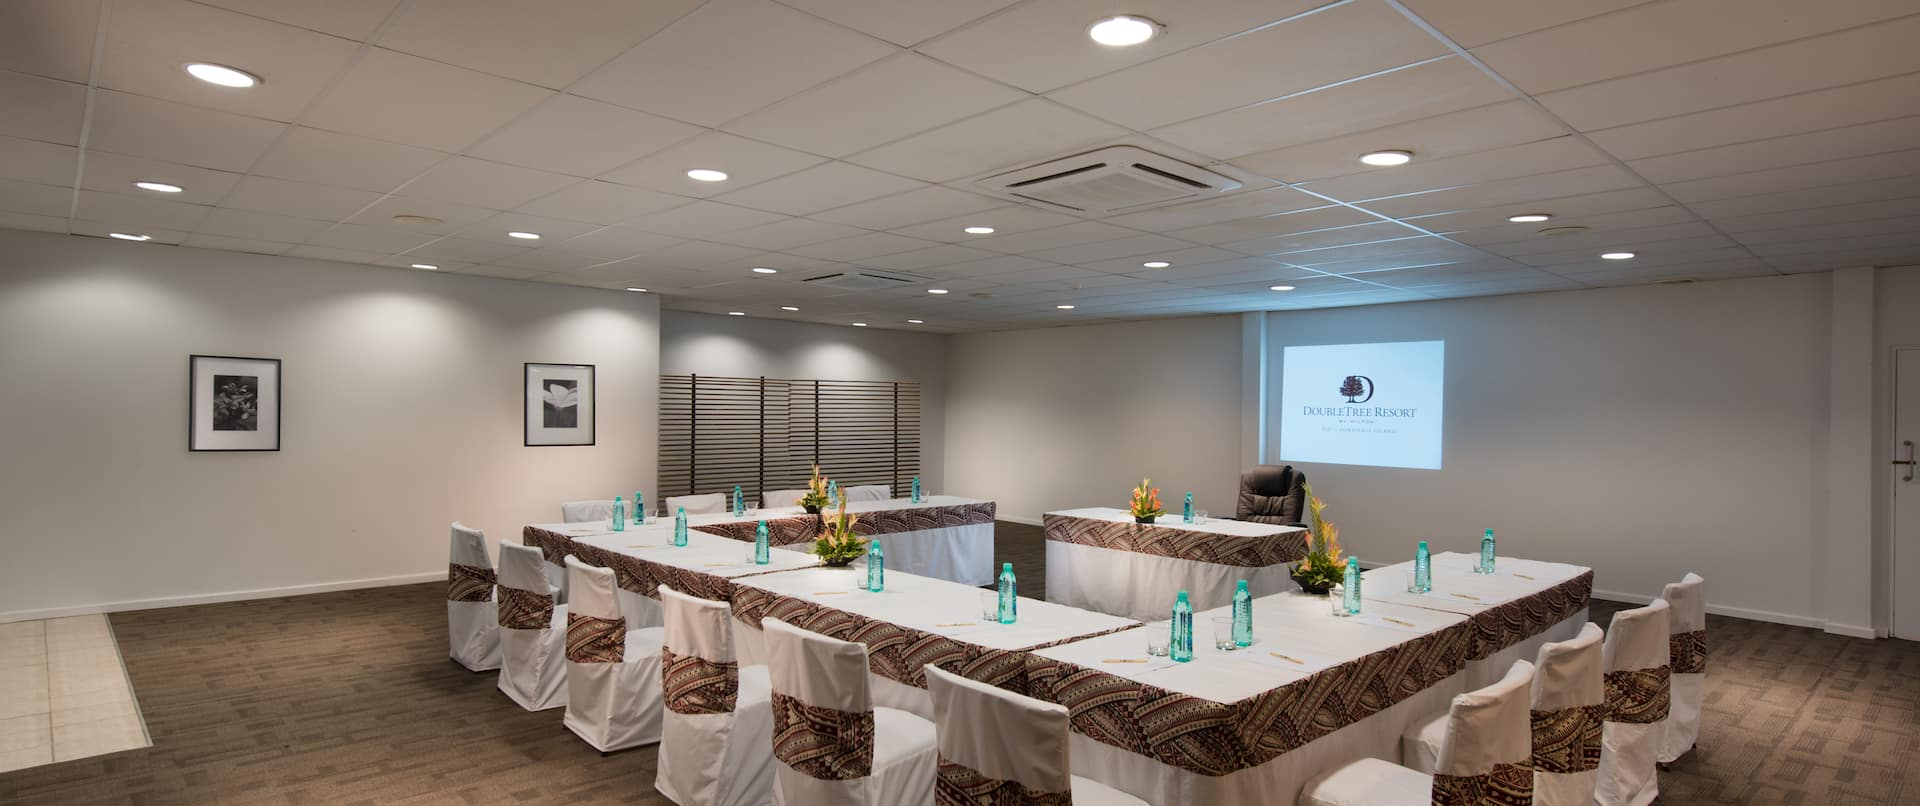 Meeting Space With Wall Art, U-Shaped Table and Chairs, Audio/Visual Equipment, and Speaker's Table